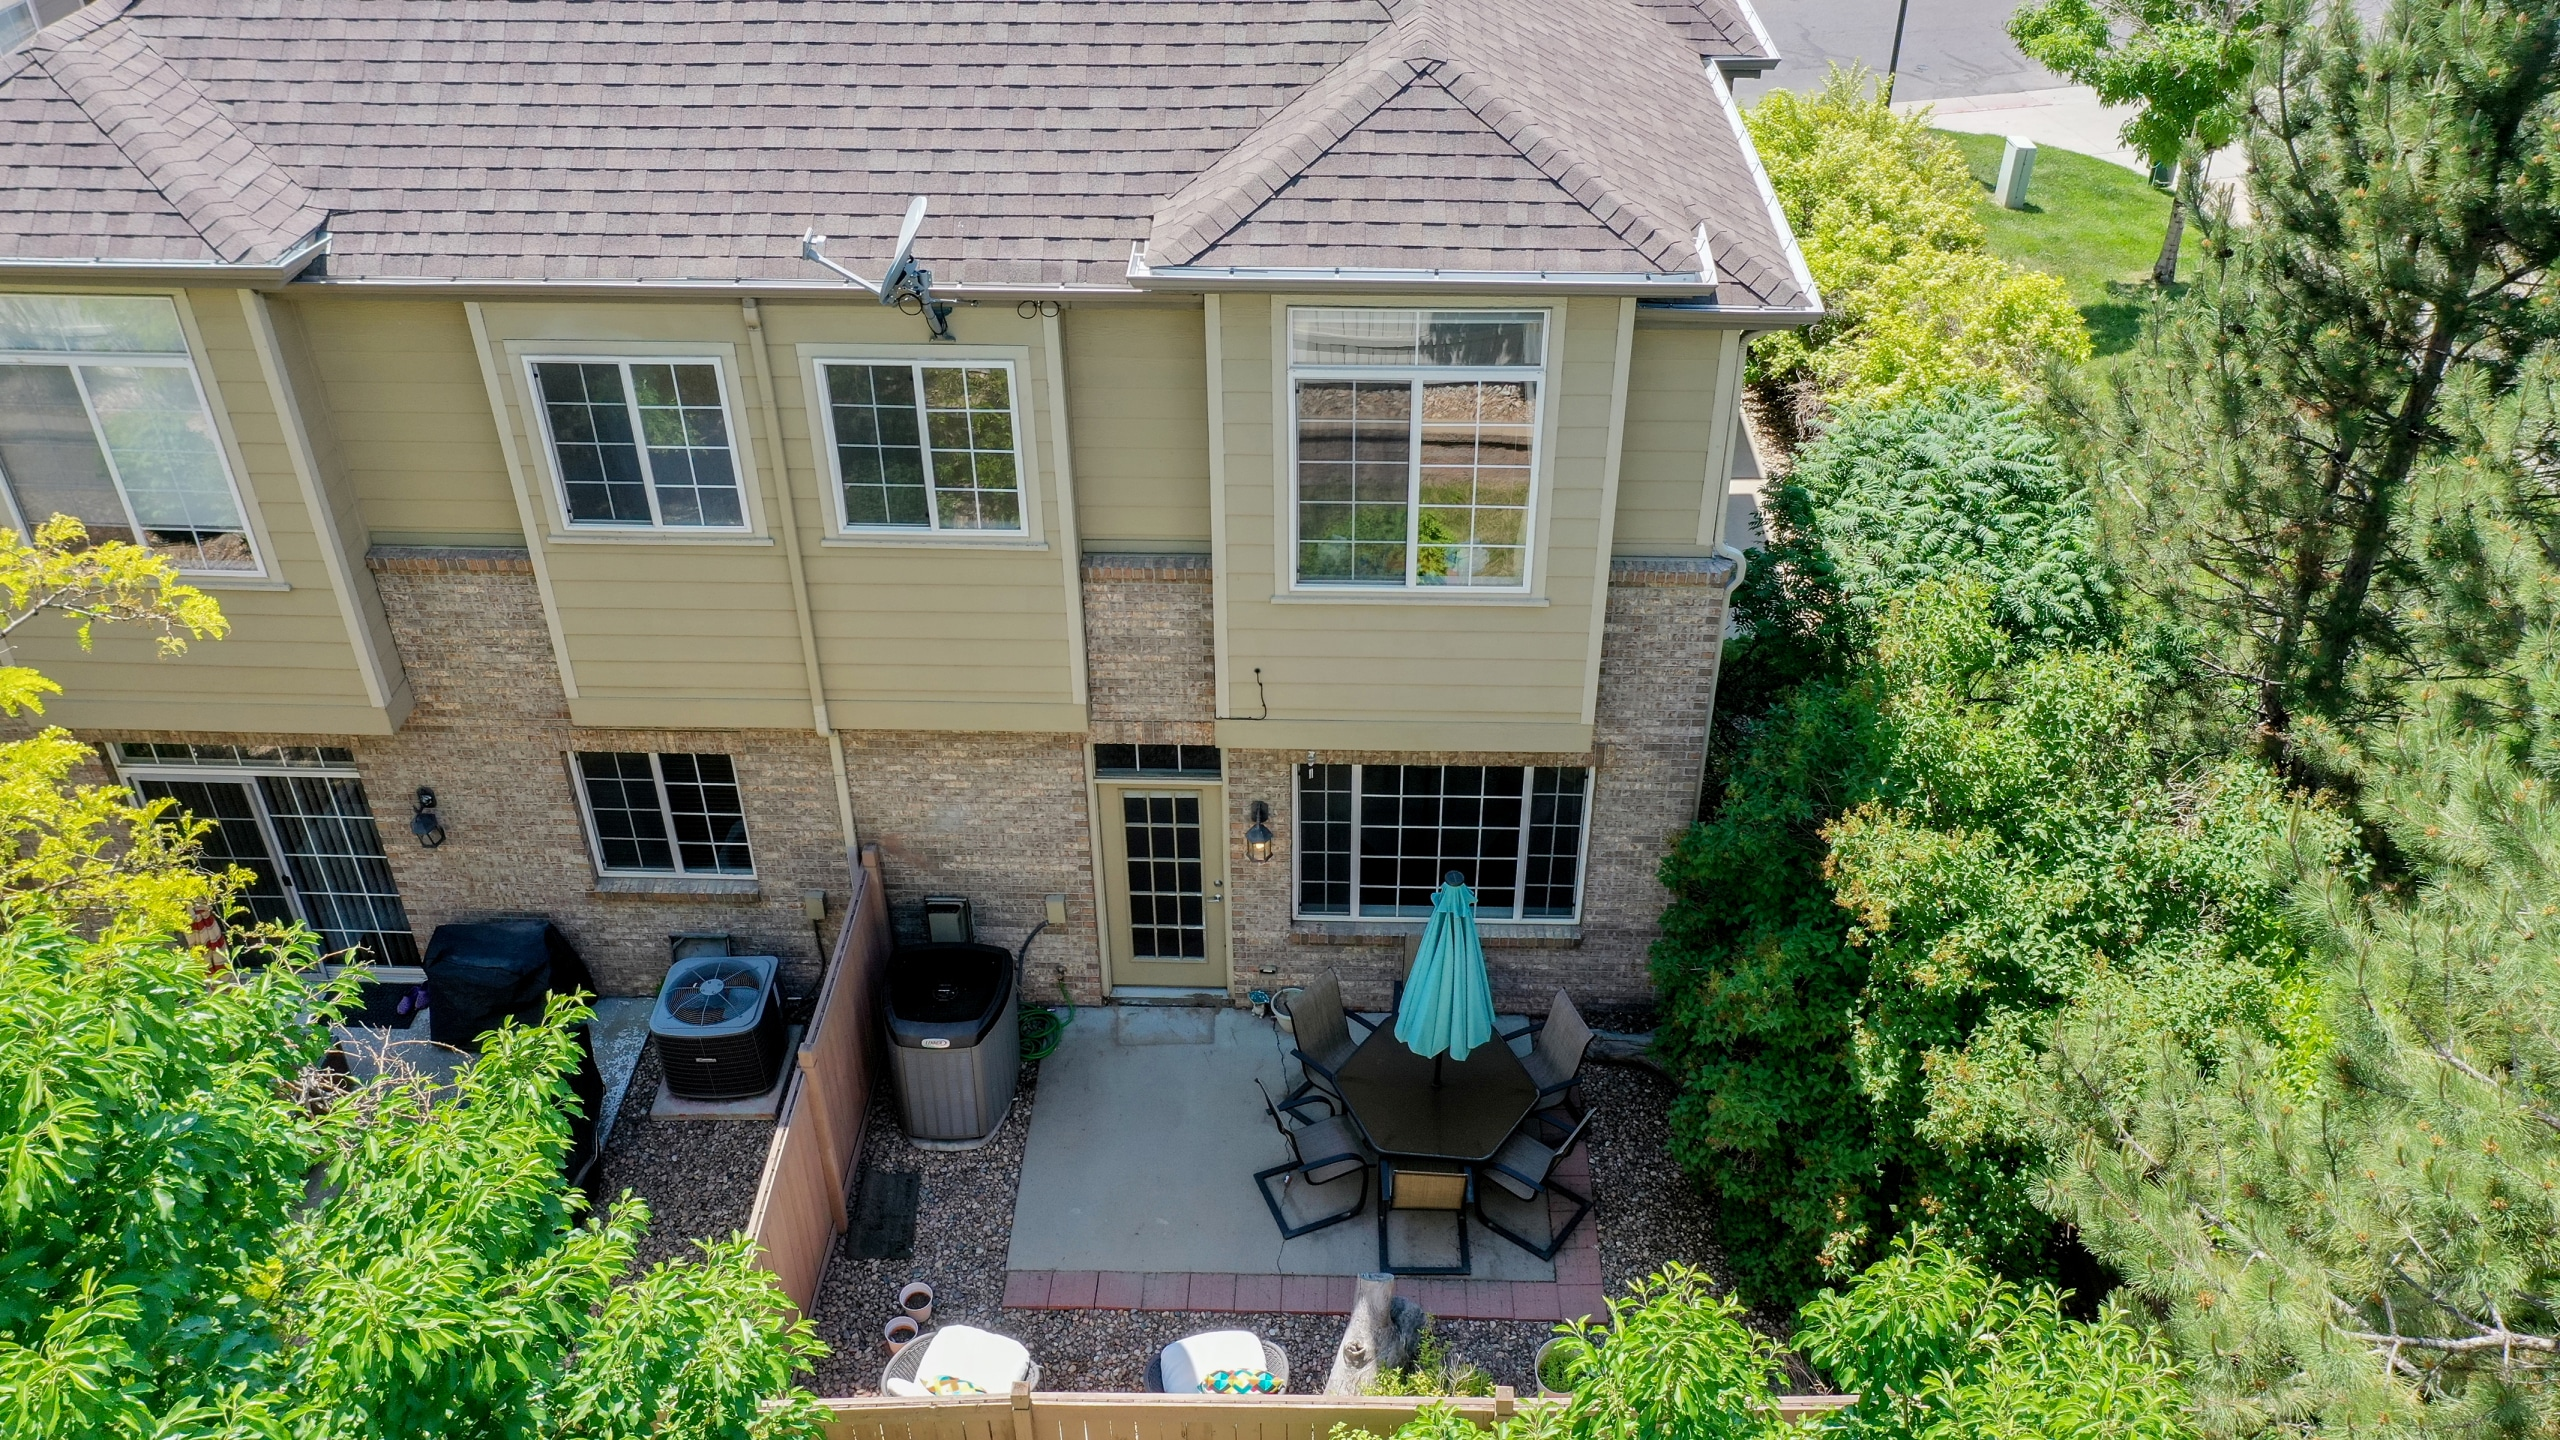 Drone view of back patio